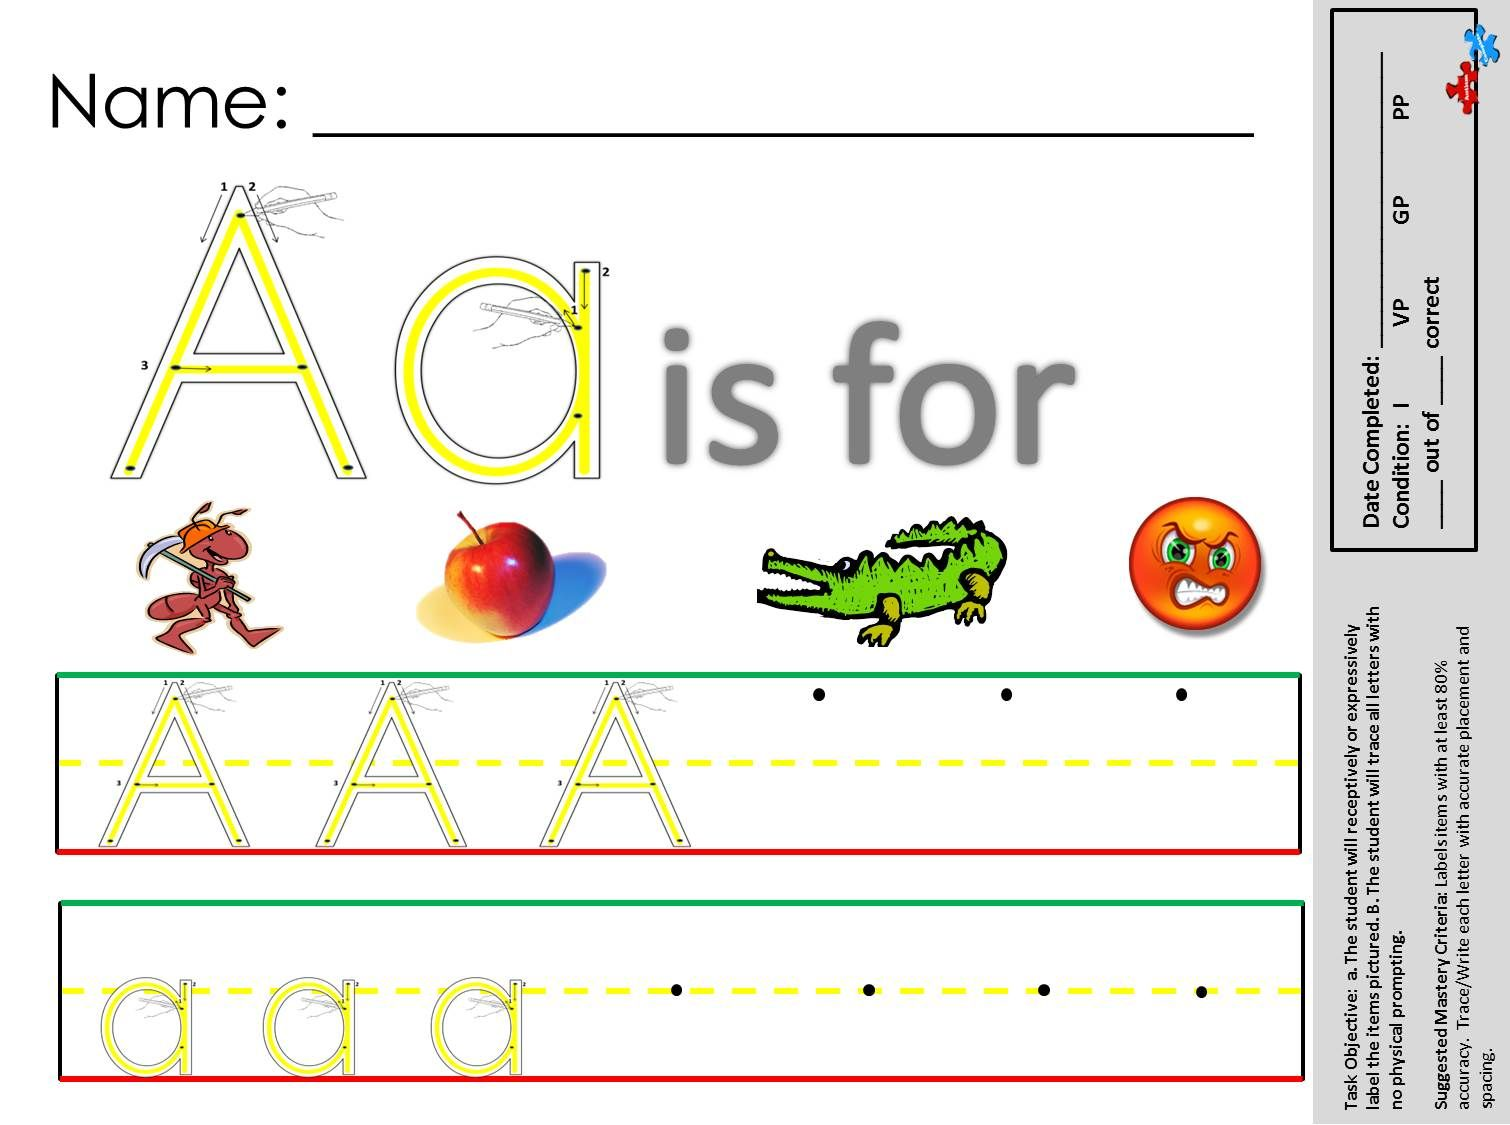 hight resolution of Find these and other great worksheets at autismcomplete.com   Autism  teaching